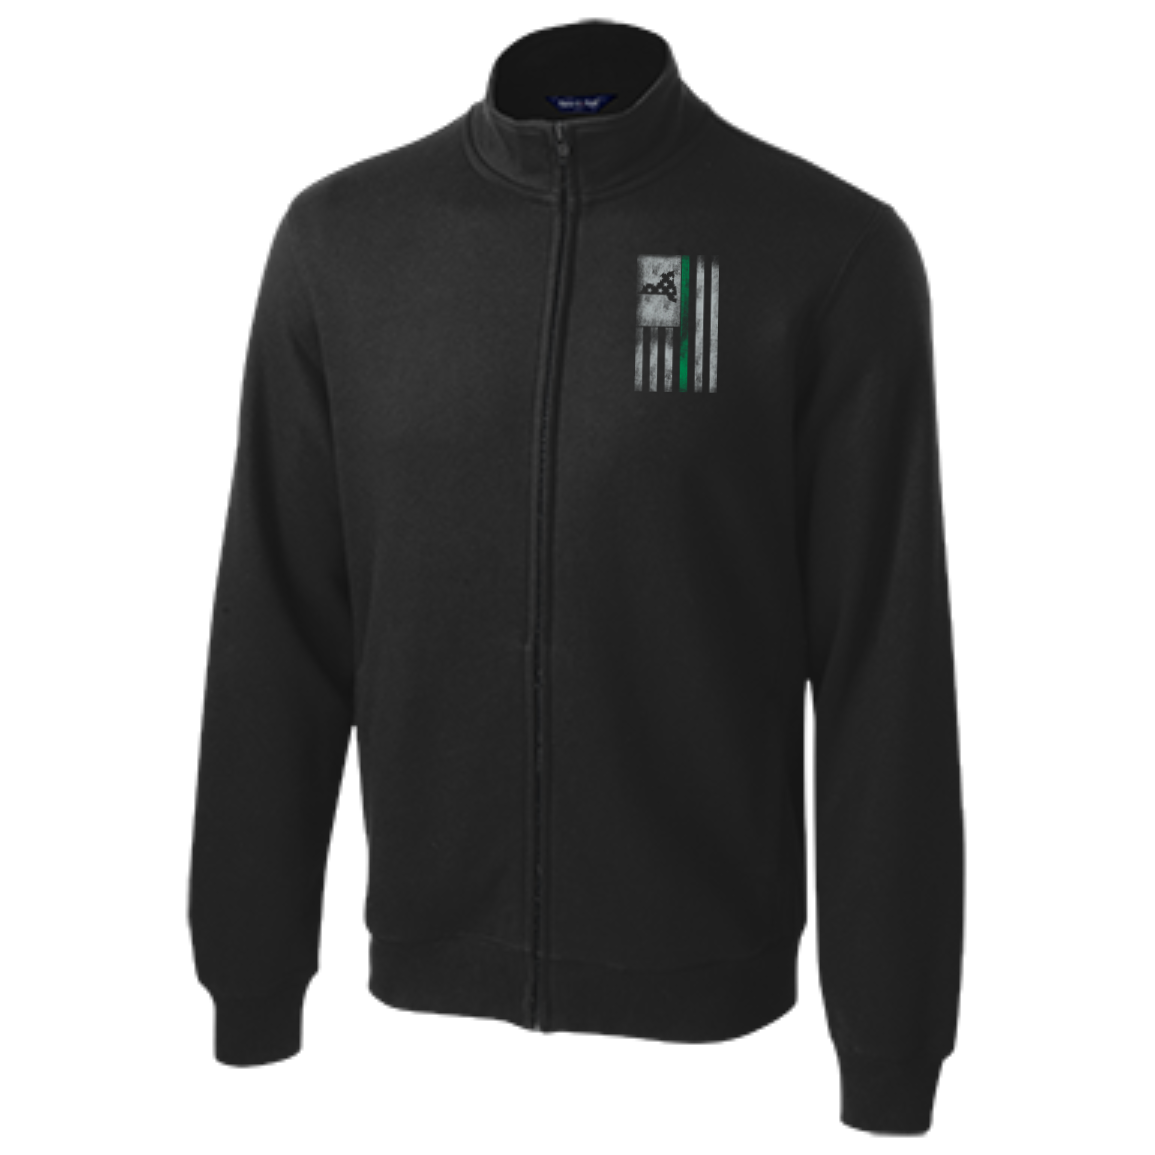 New York Thin Green Line - Tall Full-Zip Sweatshirt